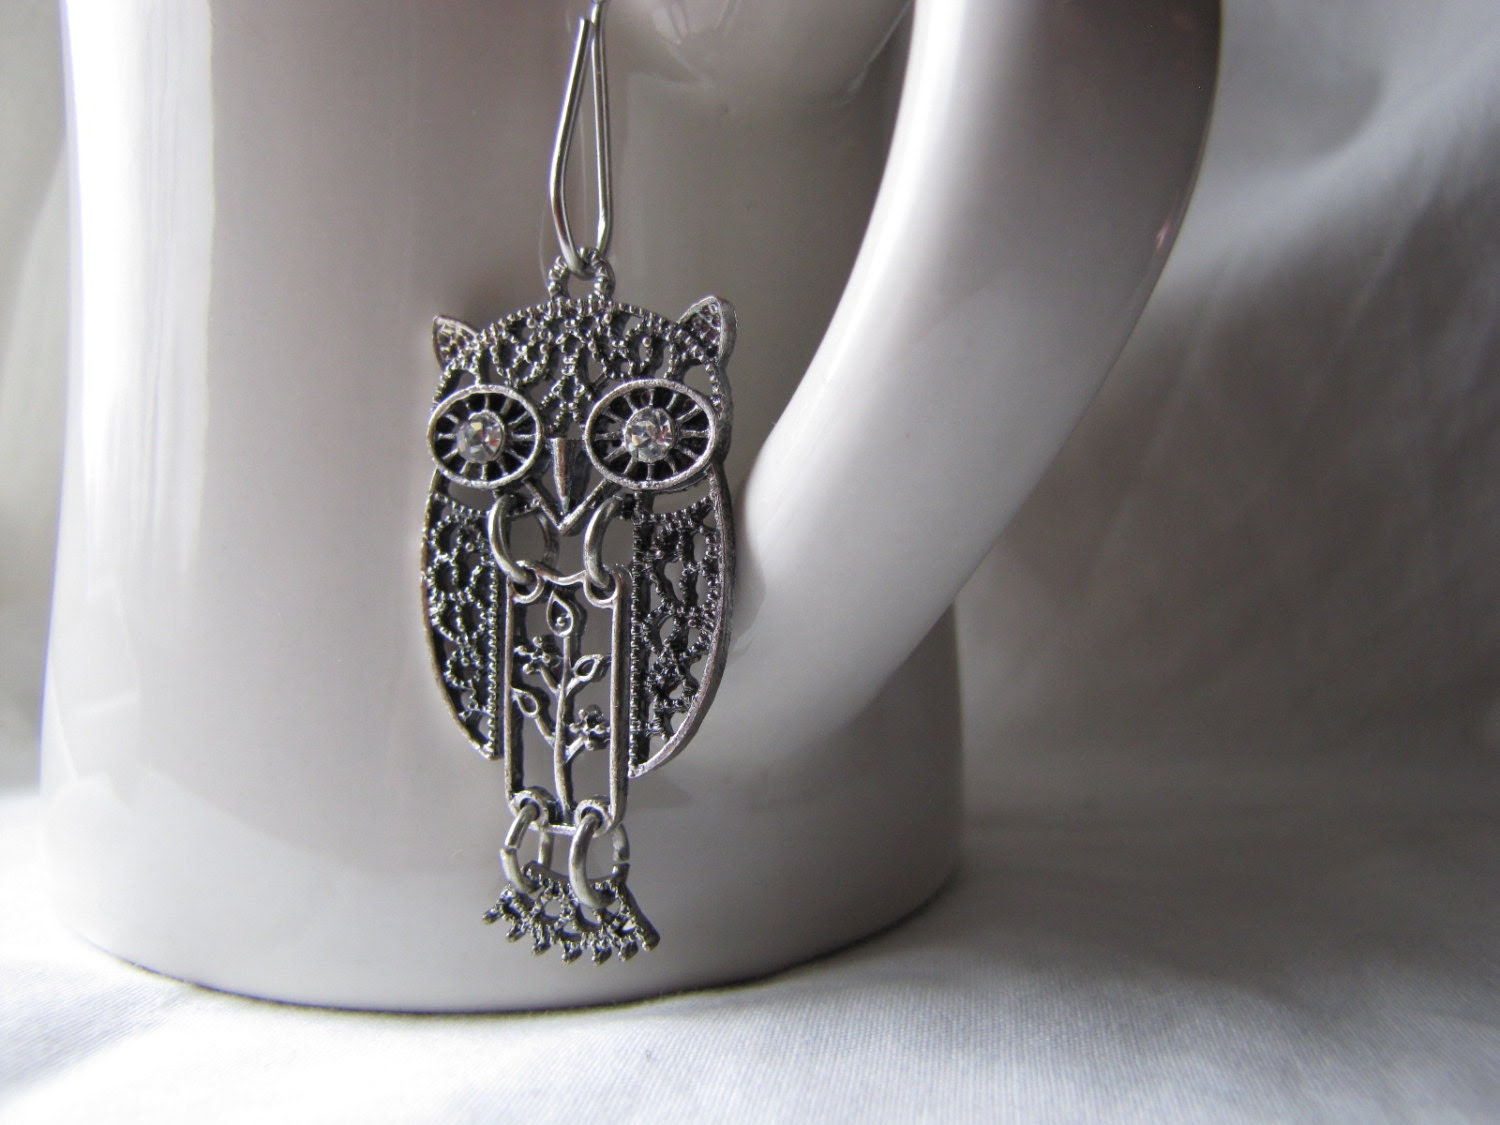 Mesh Tea Ball with Owl Charm | homeandcottage